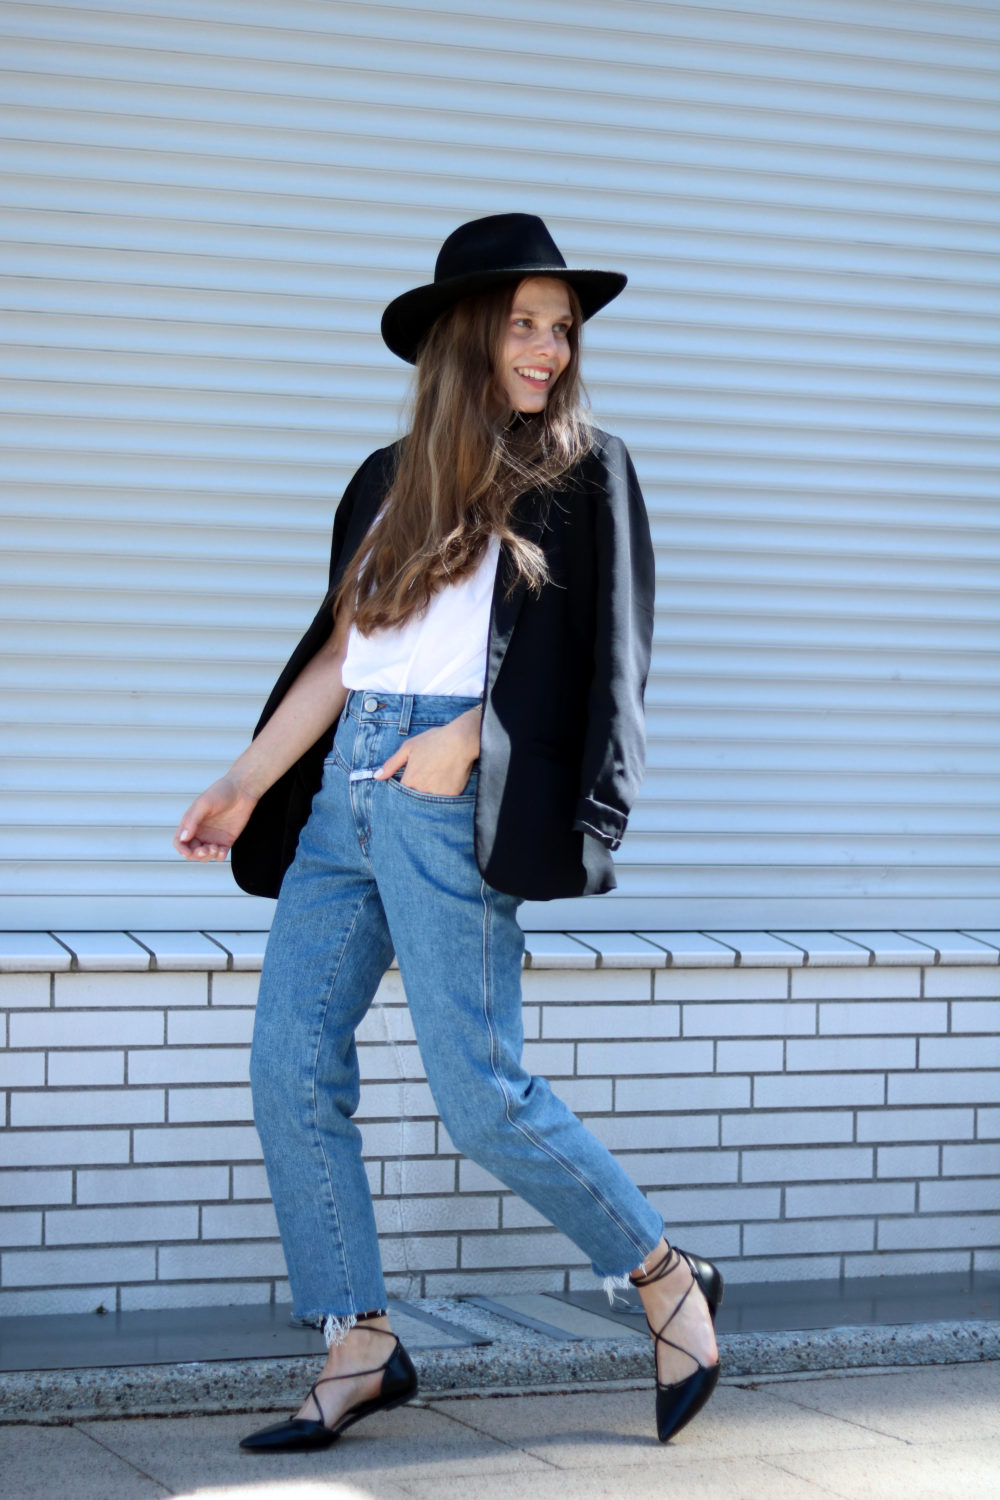 MEY_MARIDALOR_THE_WHITE_SHIRT_OUTFIT_PEDAL_PUSHER_FRENCH_LOOK_STREETSTYLE_RUNNING